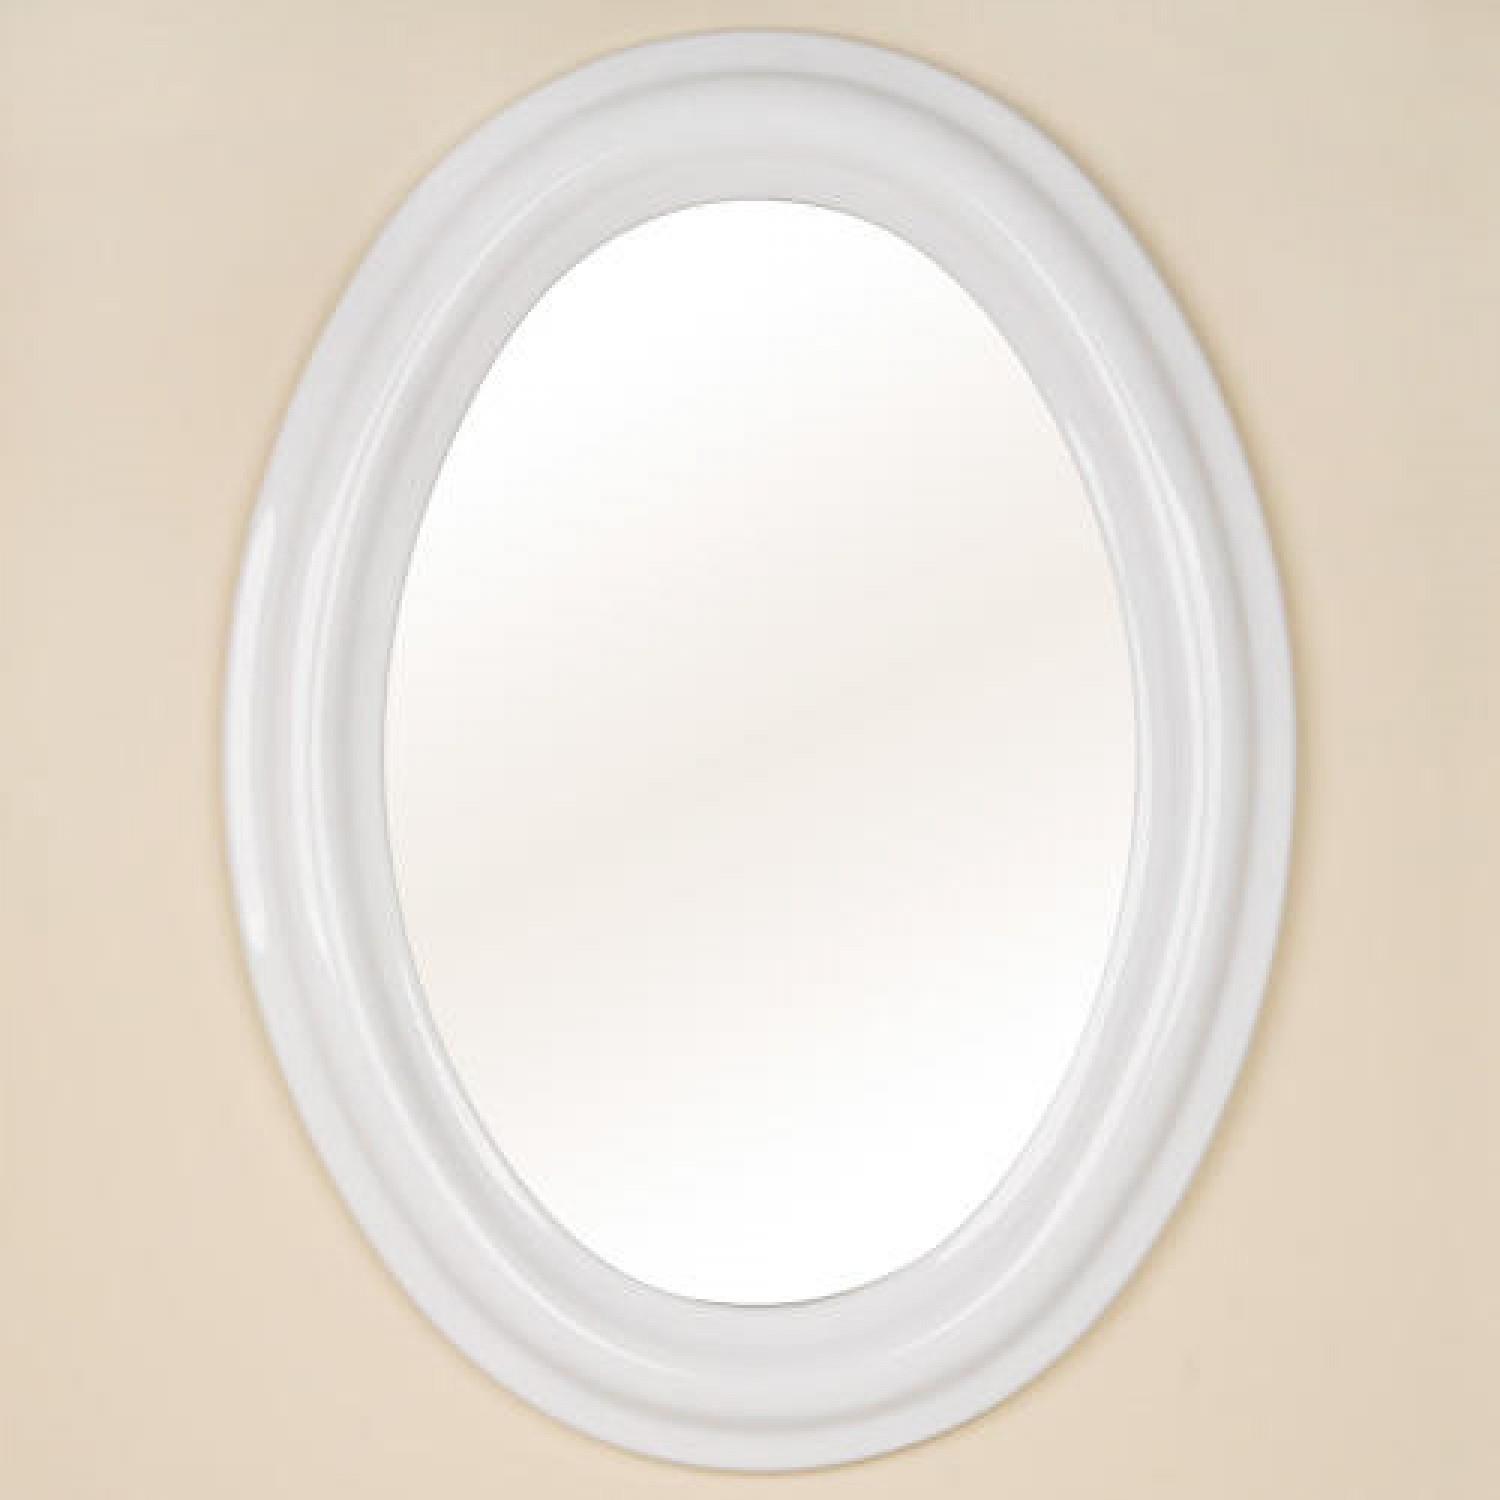 Oval Ceramic Mirror White Bathroom Throughout White Oval Wall Mirror (Image 6 of 15)